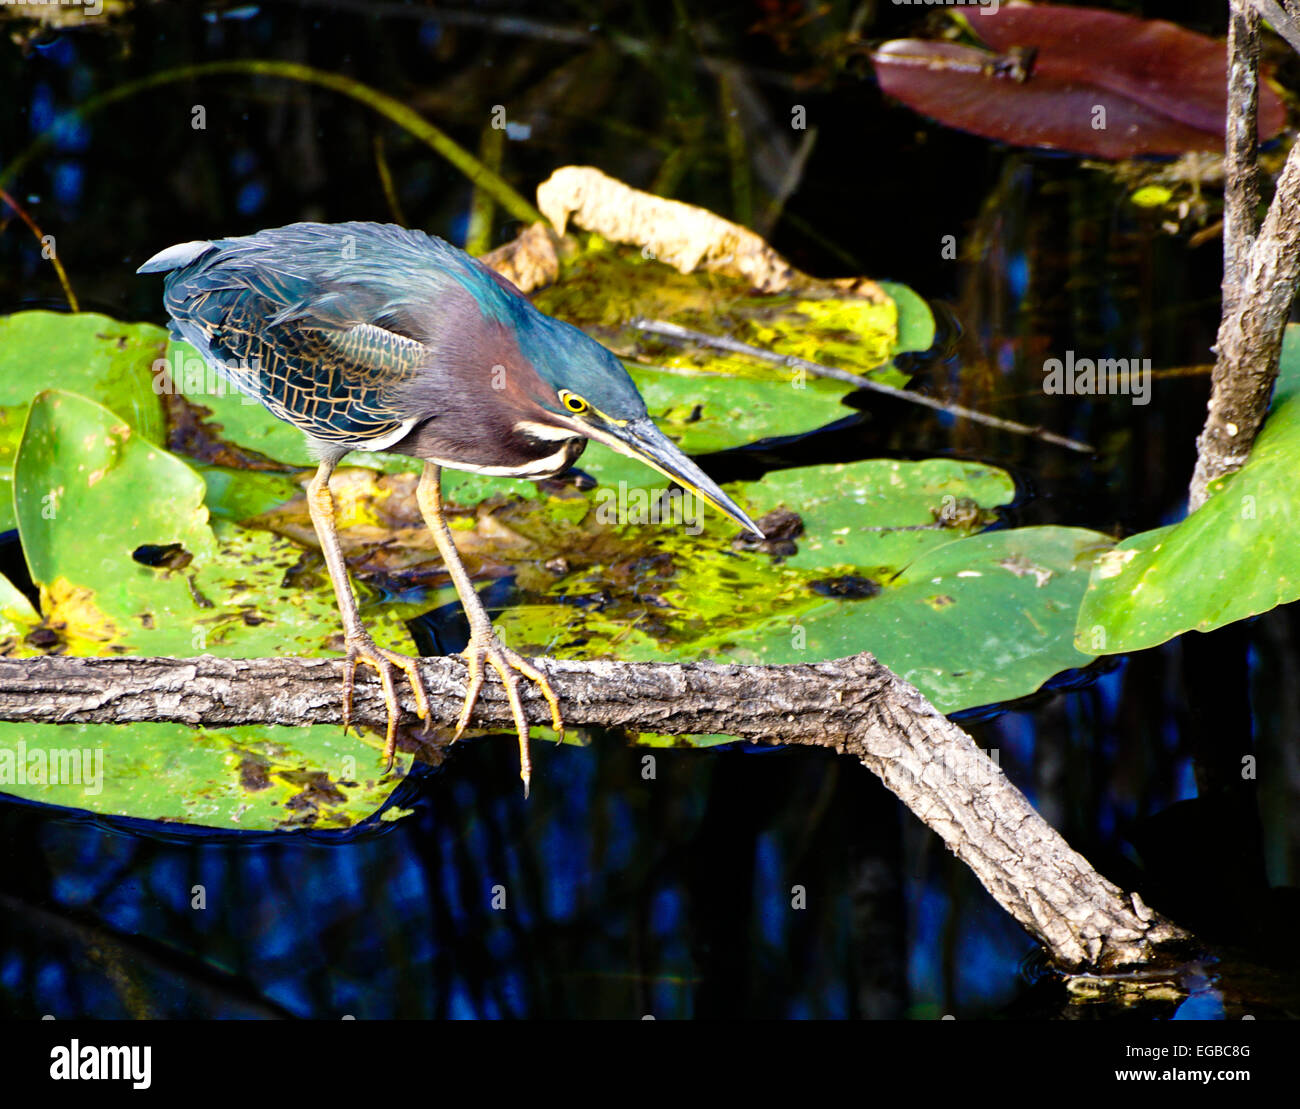 Green Heron (Butorides Virescens) in Everglades National Park, Florida. - Stock Image